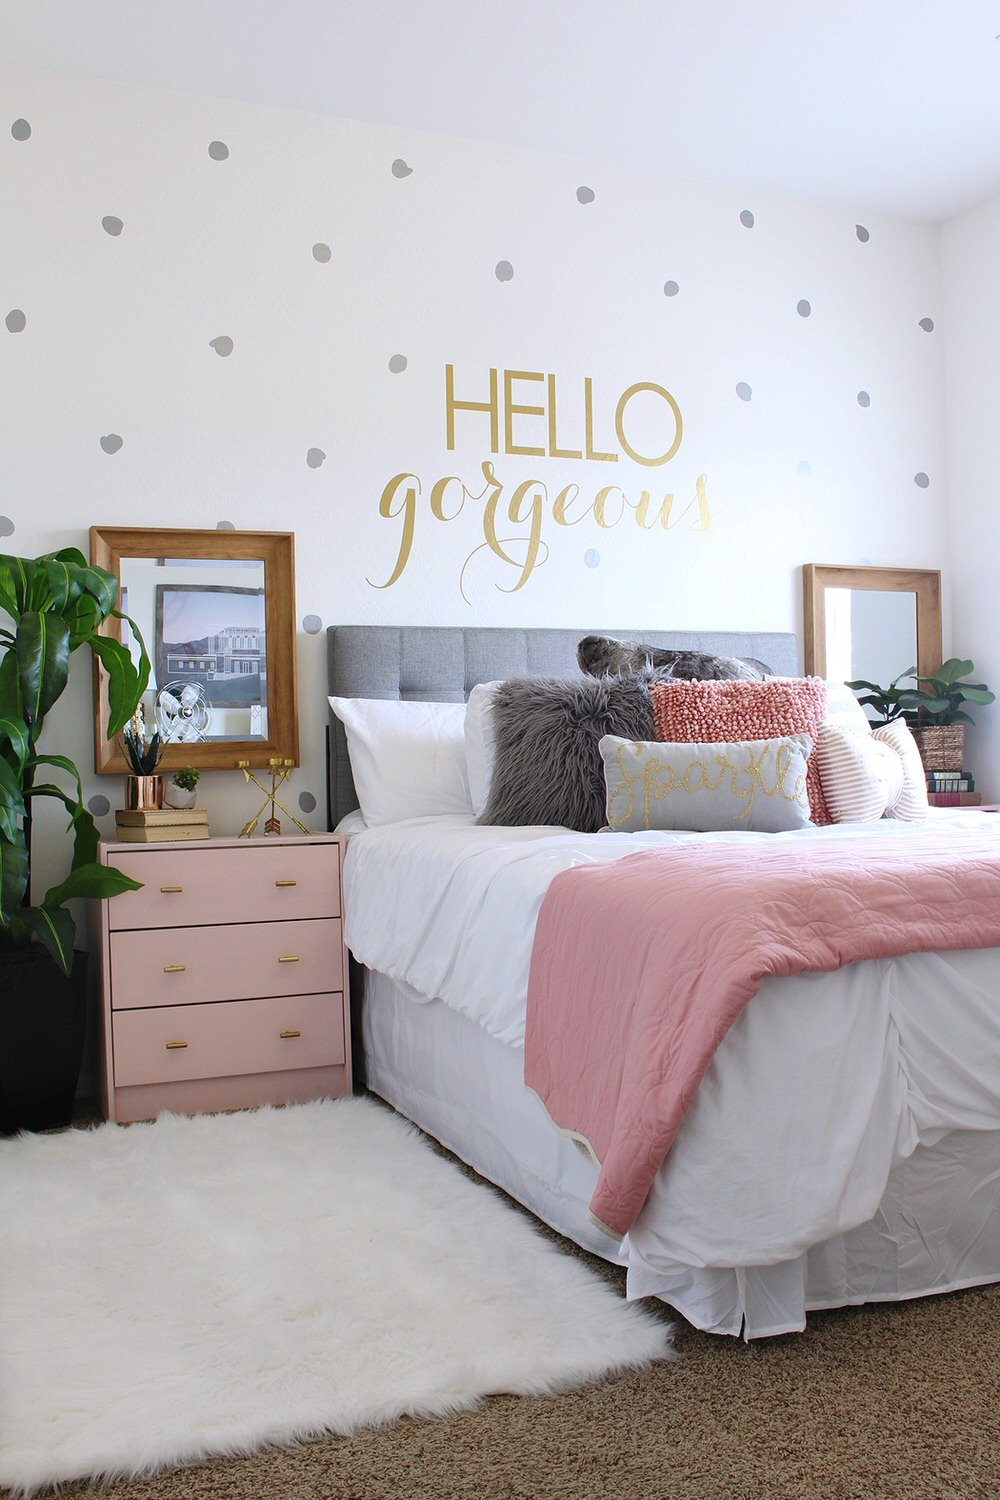 They Added Color In Pillows And Painted An Inexpensive Ikea Nightstands  This Soft Pink. They Purchased Their Headboard, But You Can Learn To Make  An ...